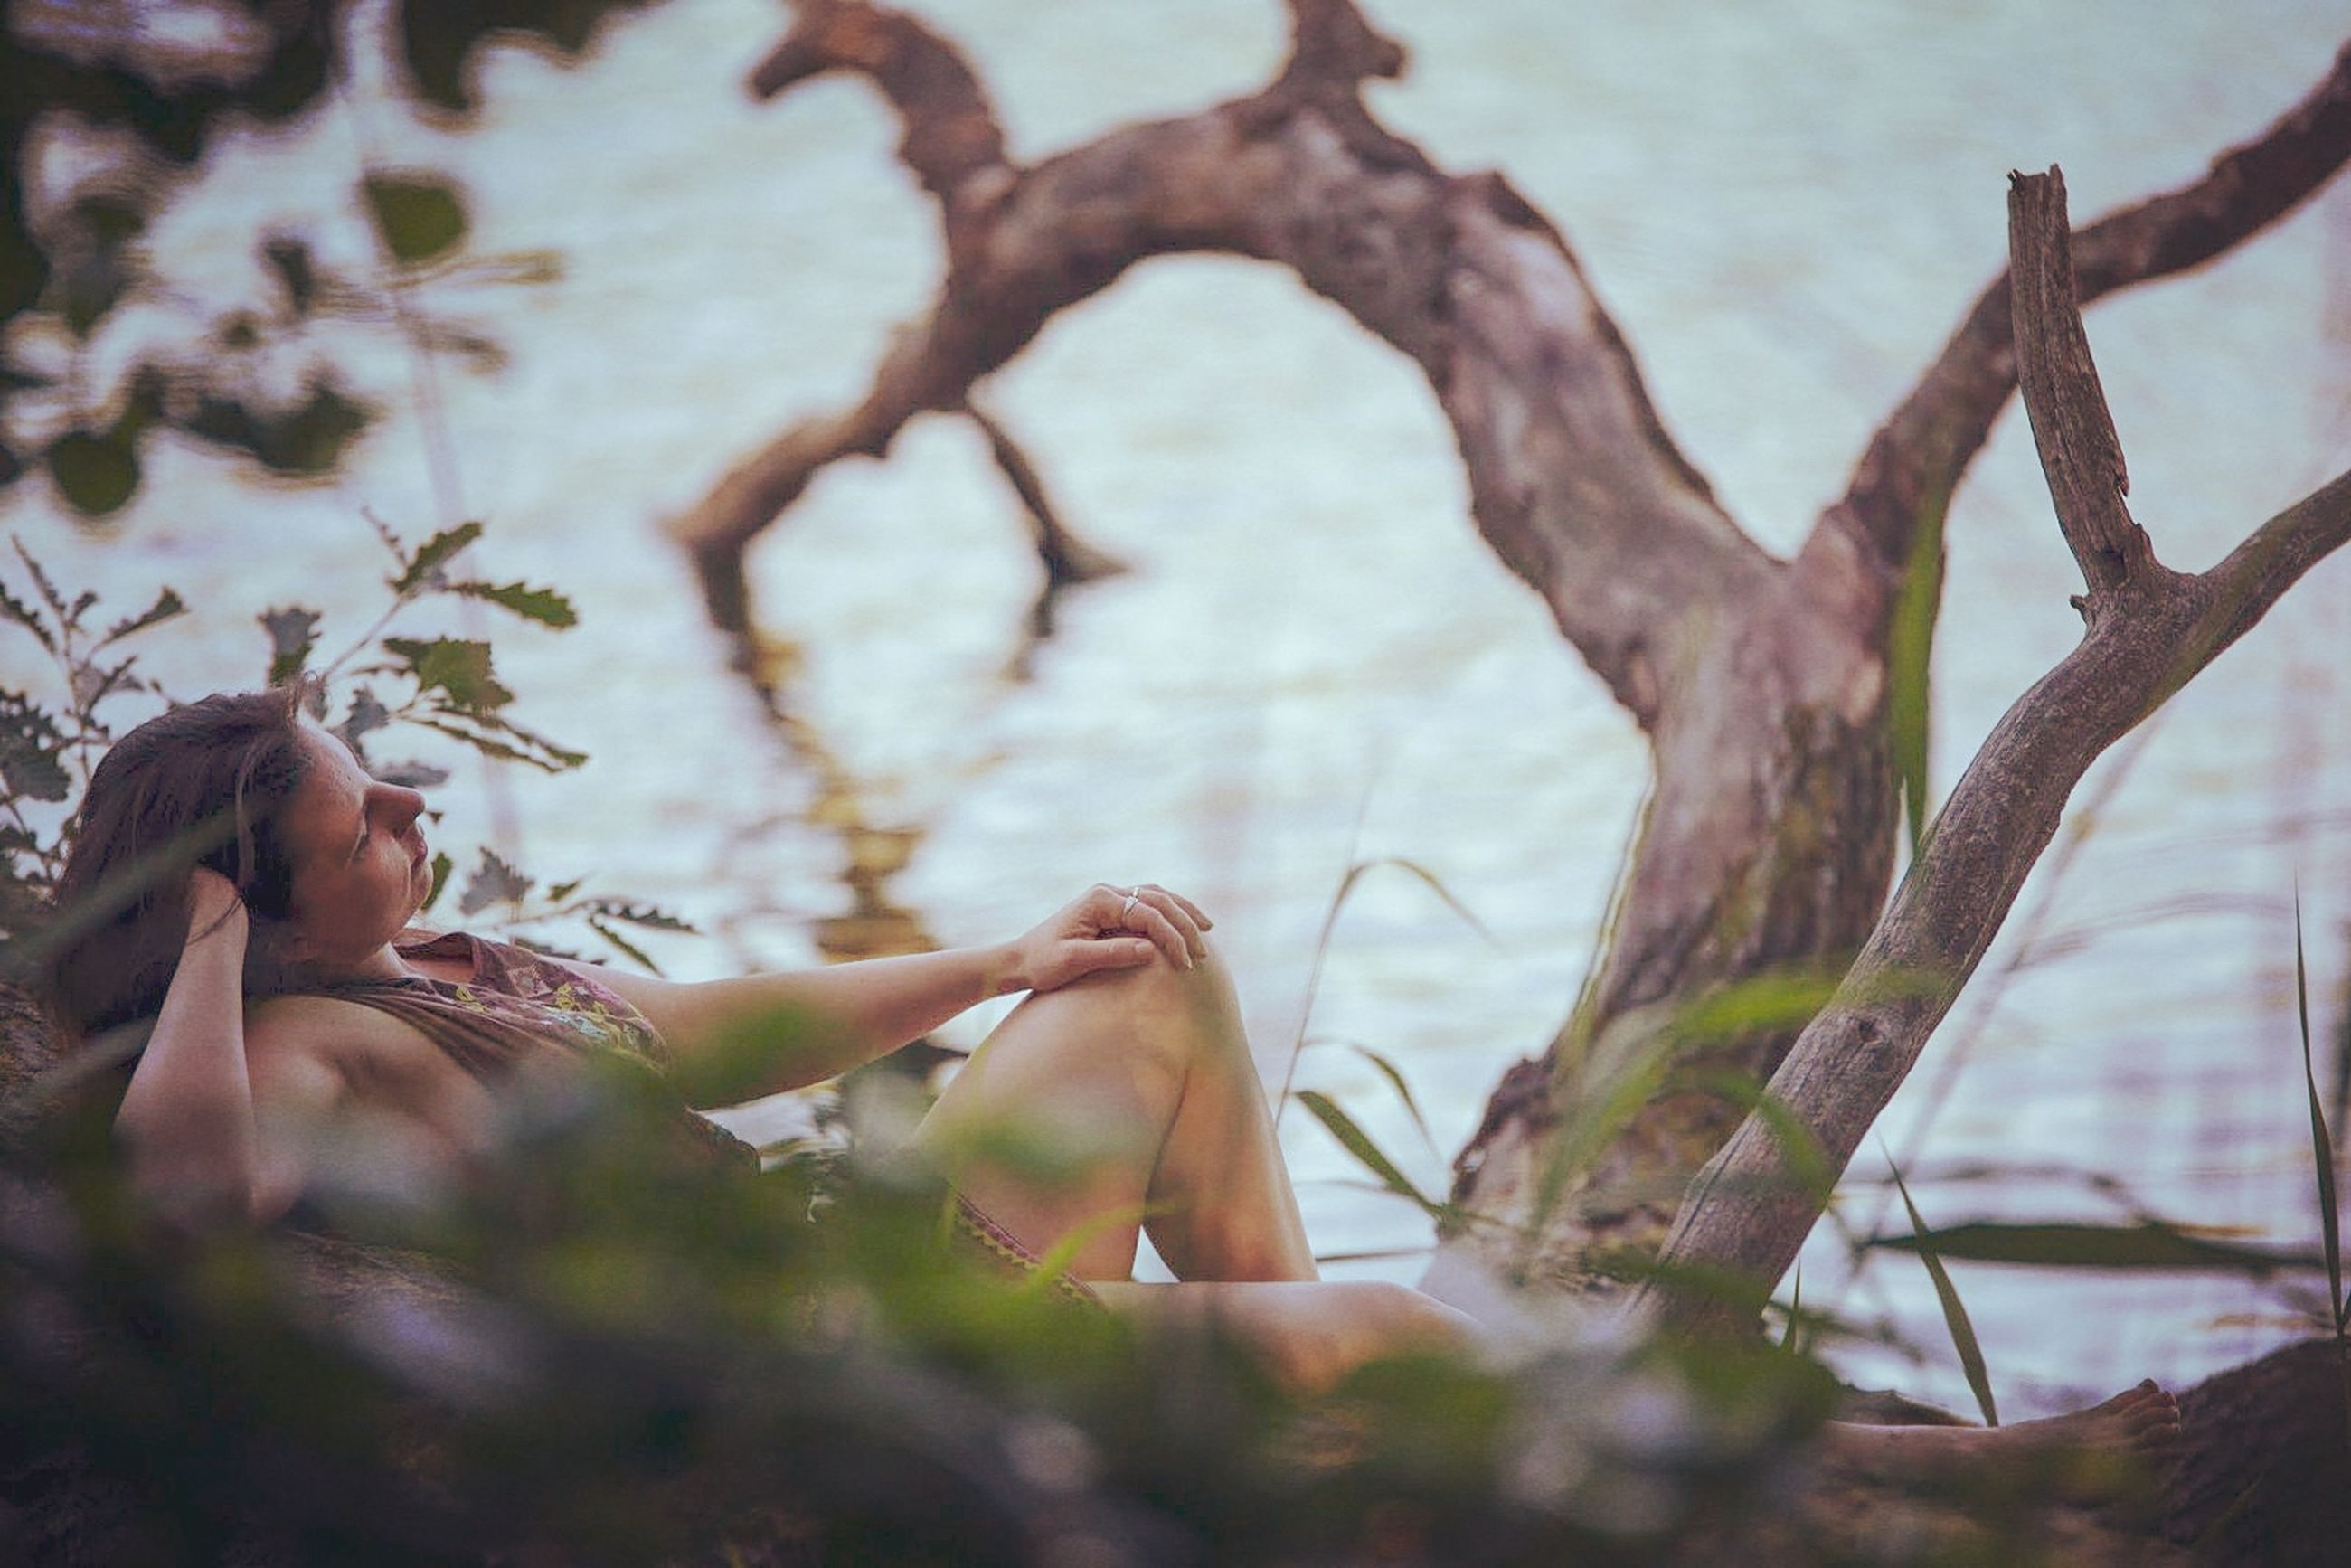 plant, tree, branch, nature, real people, one person, leisure activity, selective focus, day, lifestyles, women, outdoors, adult, beauty in nature, side view, trunk, sitting, full length, tree trunk